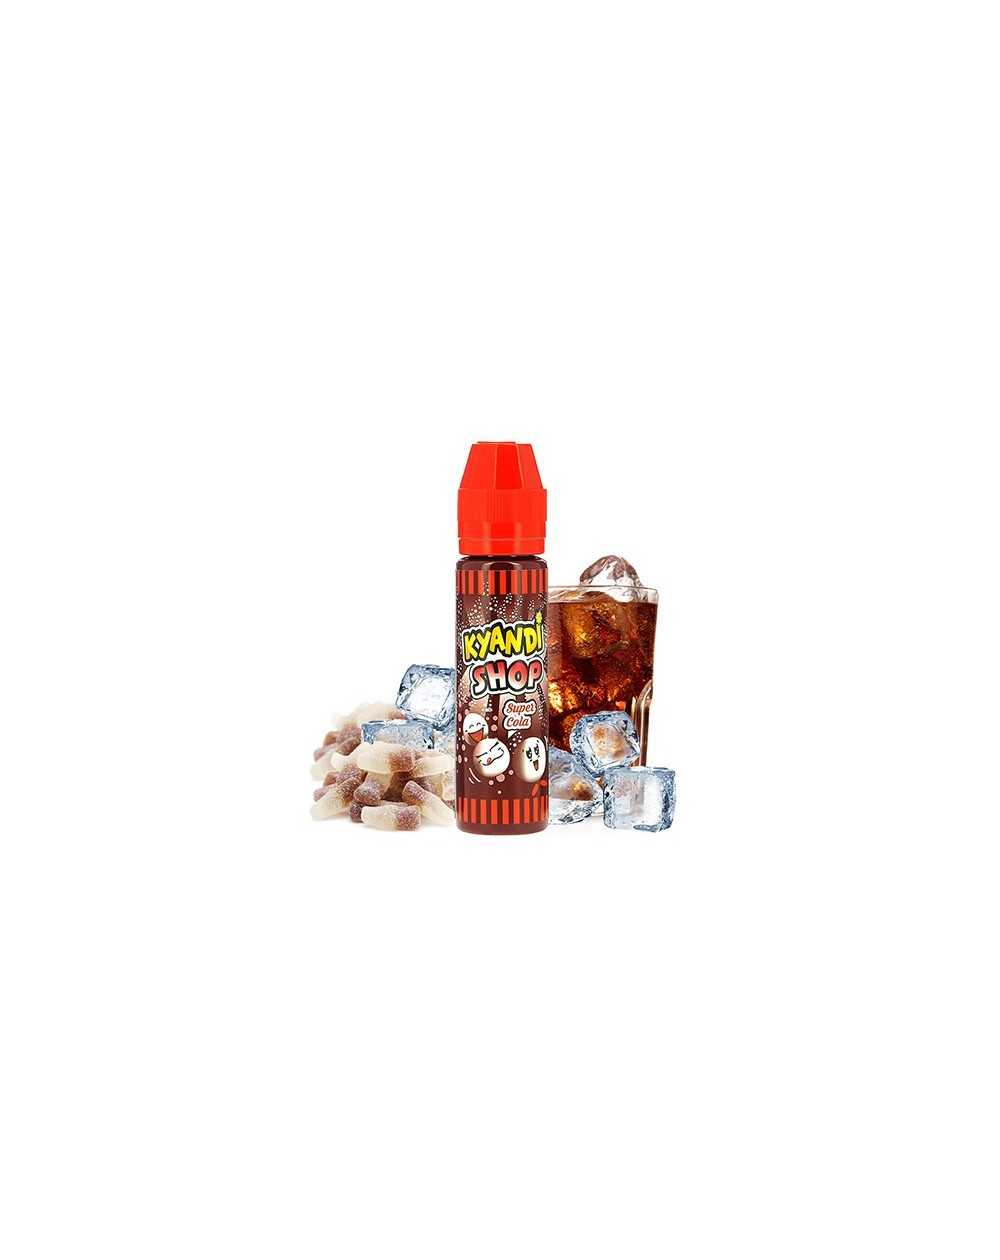 Super Cola 50ml - Kyandi Shop-1